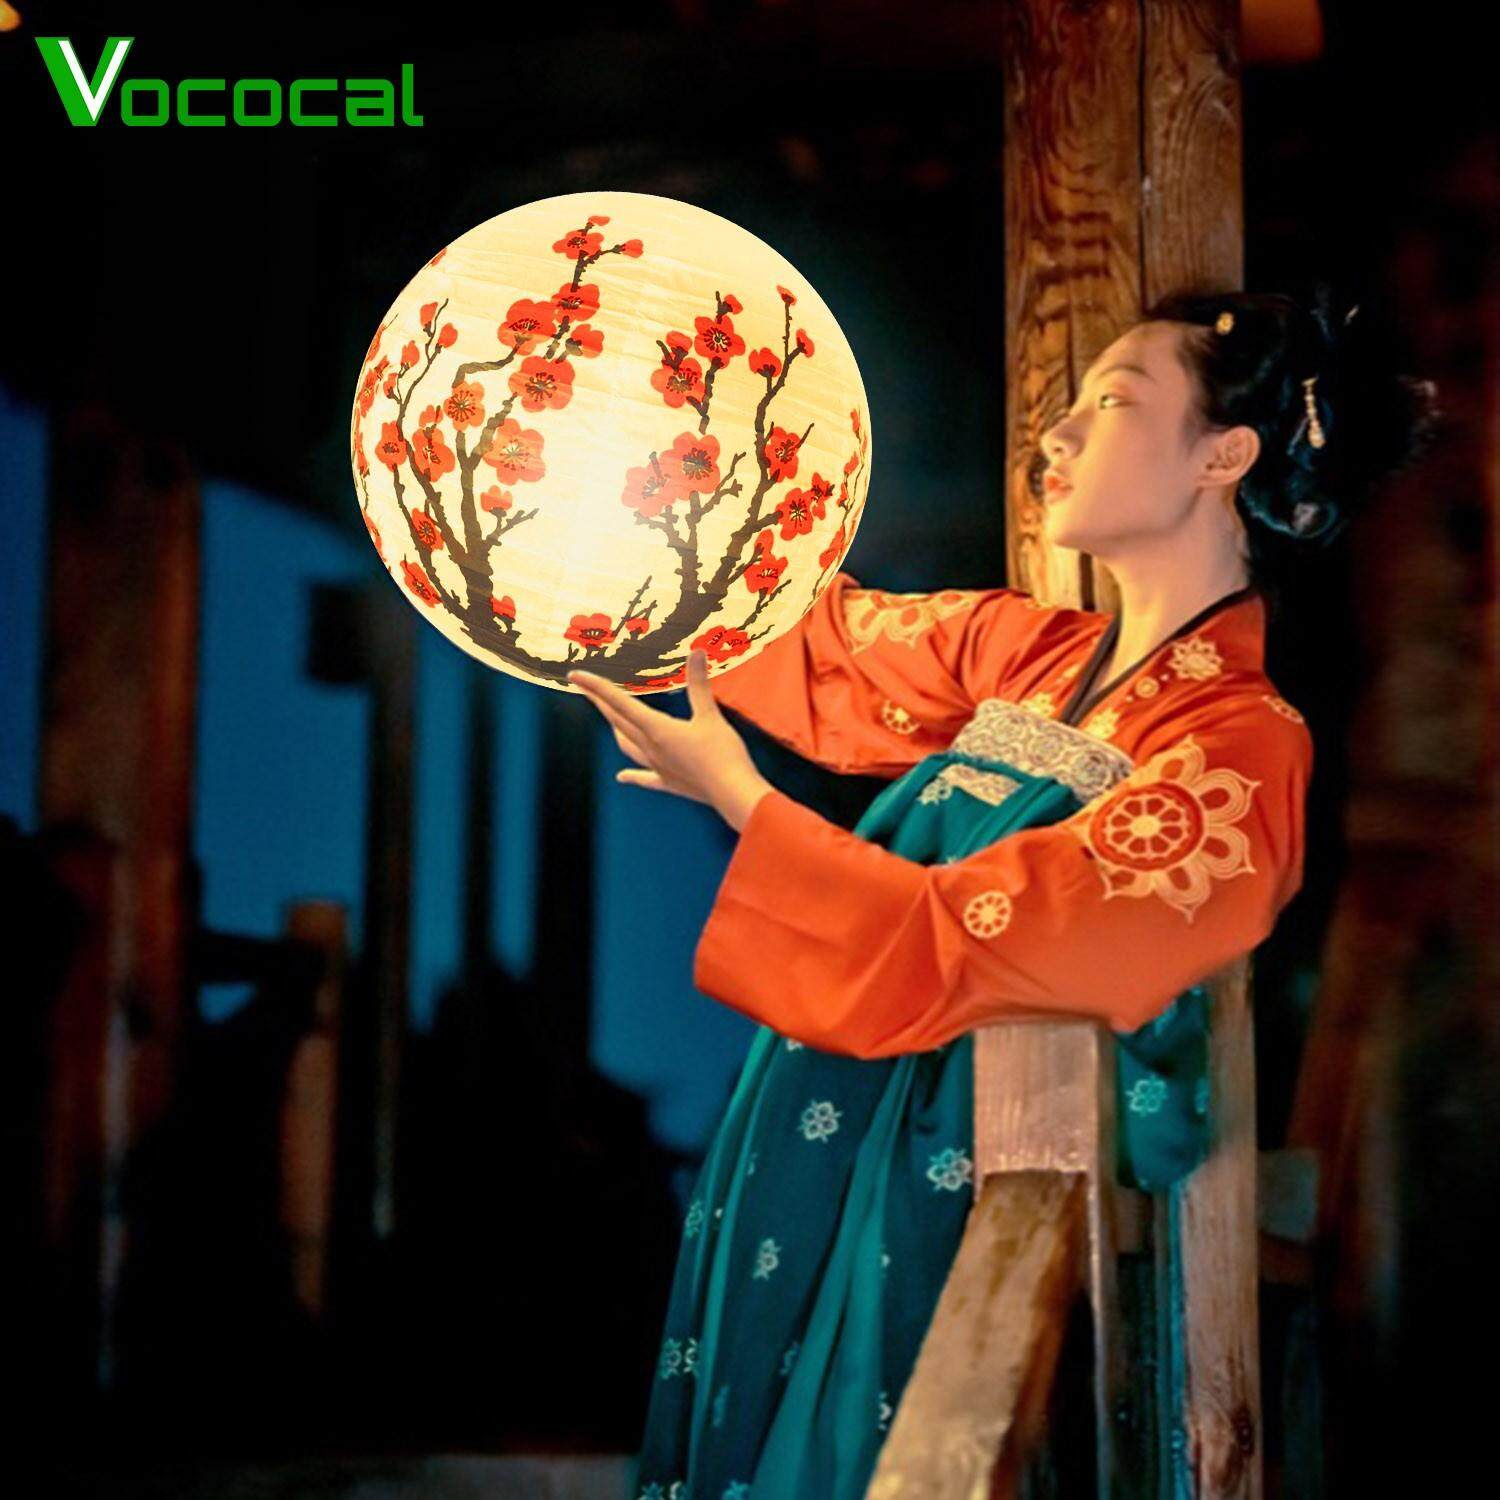 5pcs Chinese Paper Lanterns Plum Blossoms Flowers Lamp for Lunar New Year Spring Festival Home Garden Decorations 16 Inch